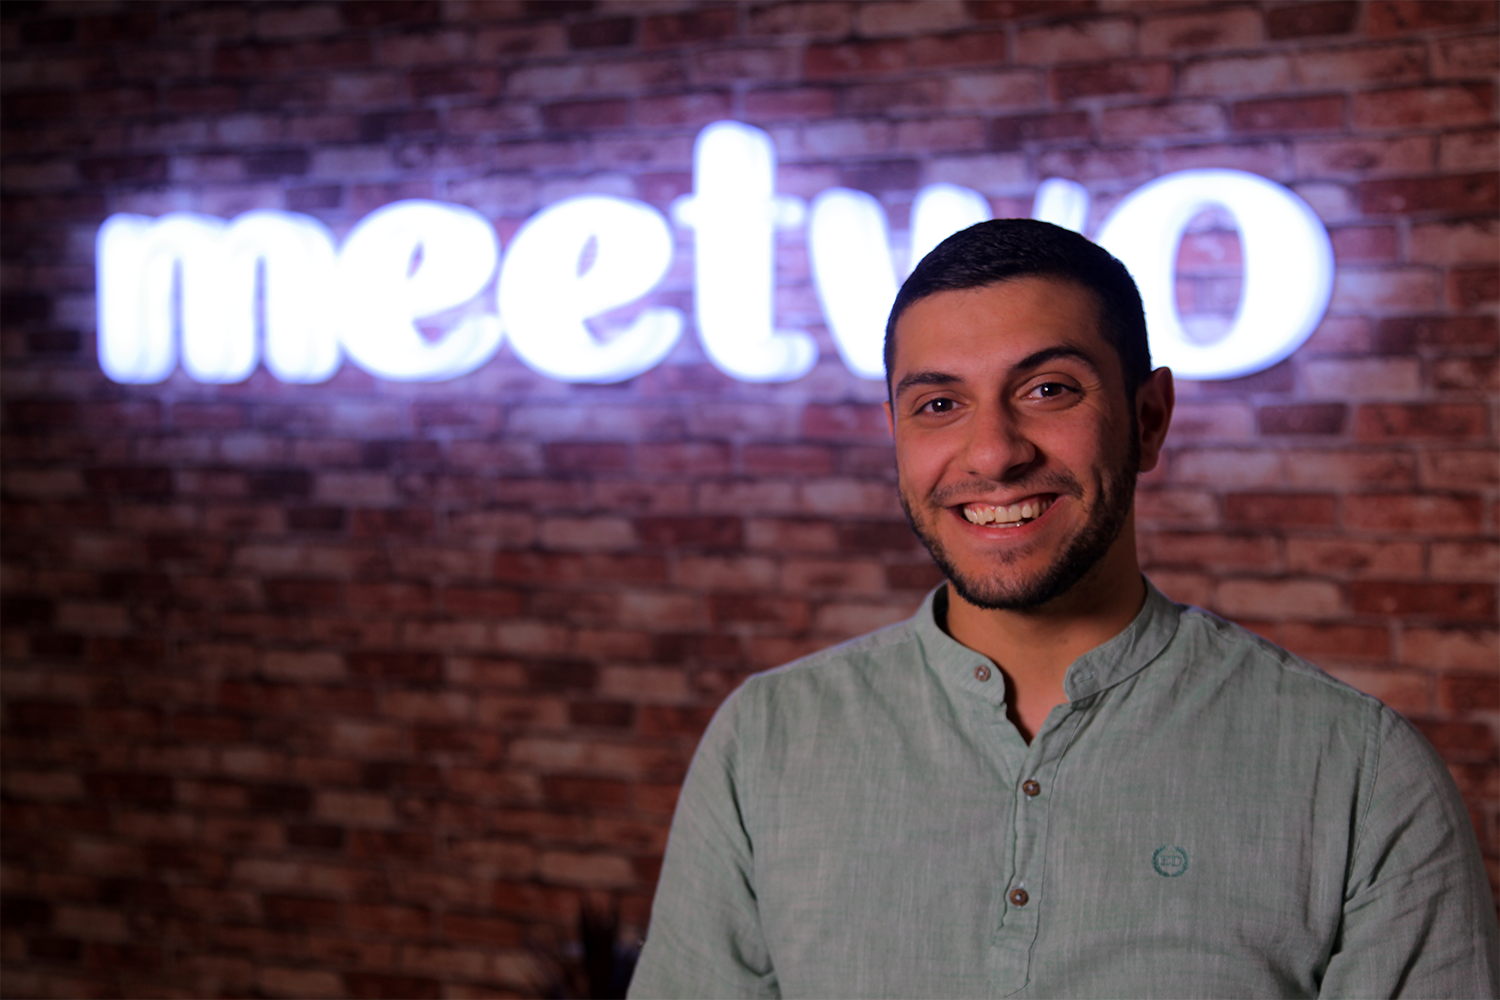 Interview: 'Meetwo' Startup Co-founder Talks Launch Day